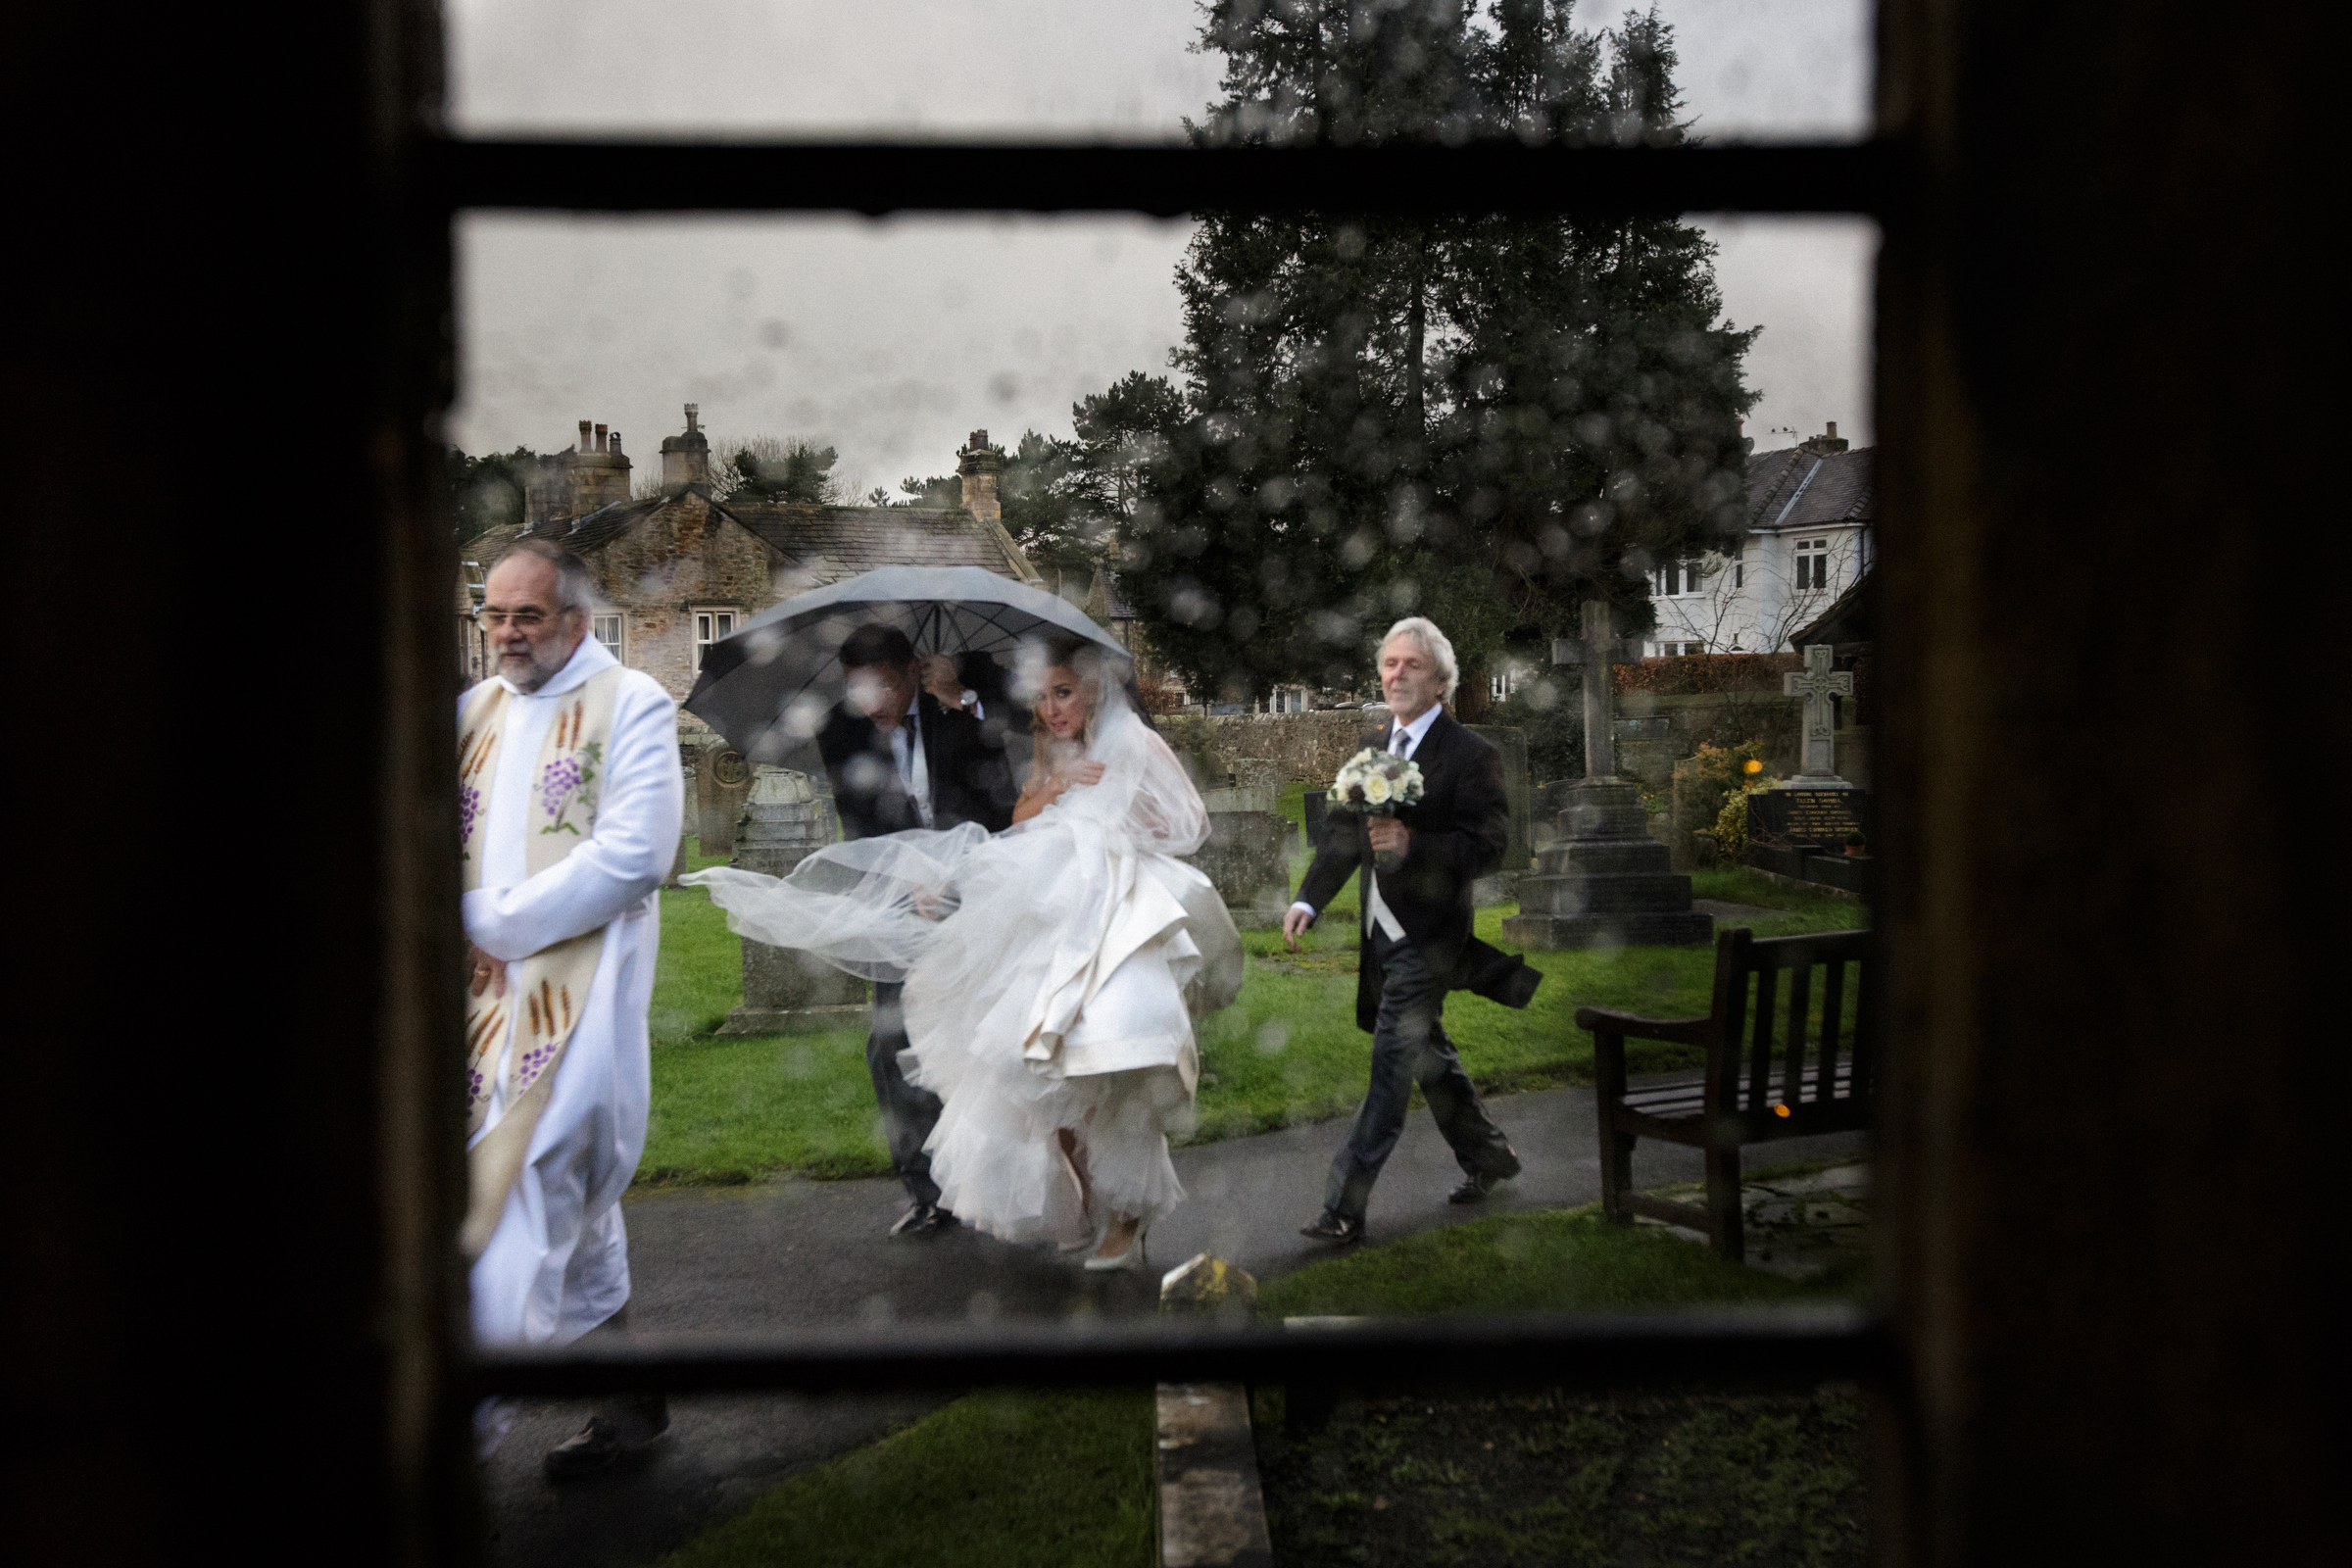 Bride and groom walking through church grounds - photo by Jeff Ascough